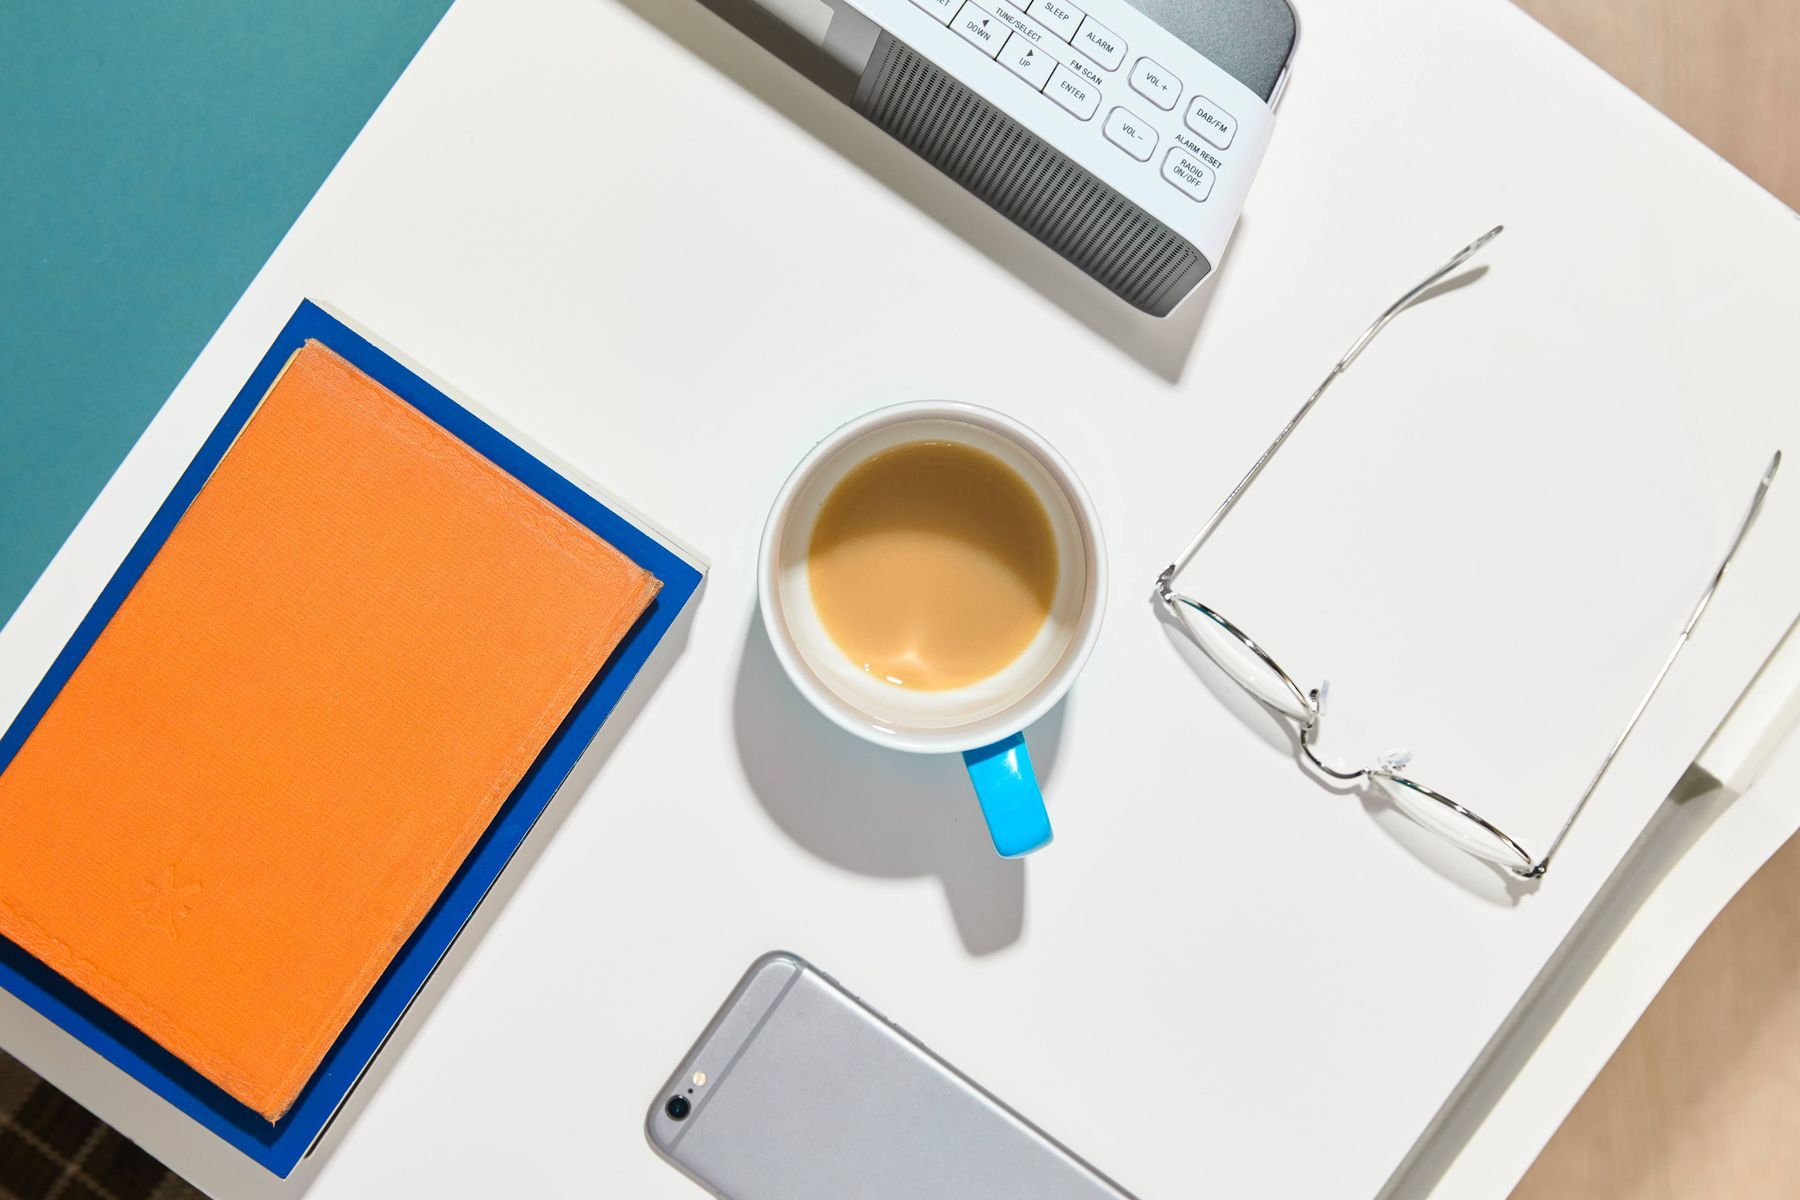 glasses, orange notebook and cup of coffee on white table